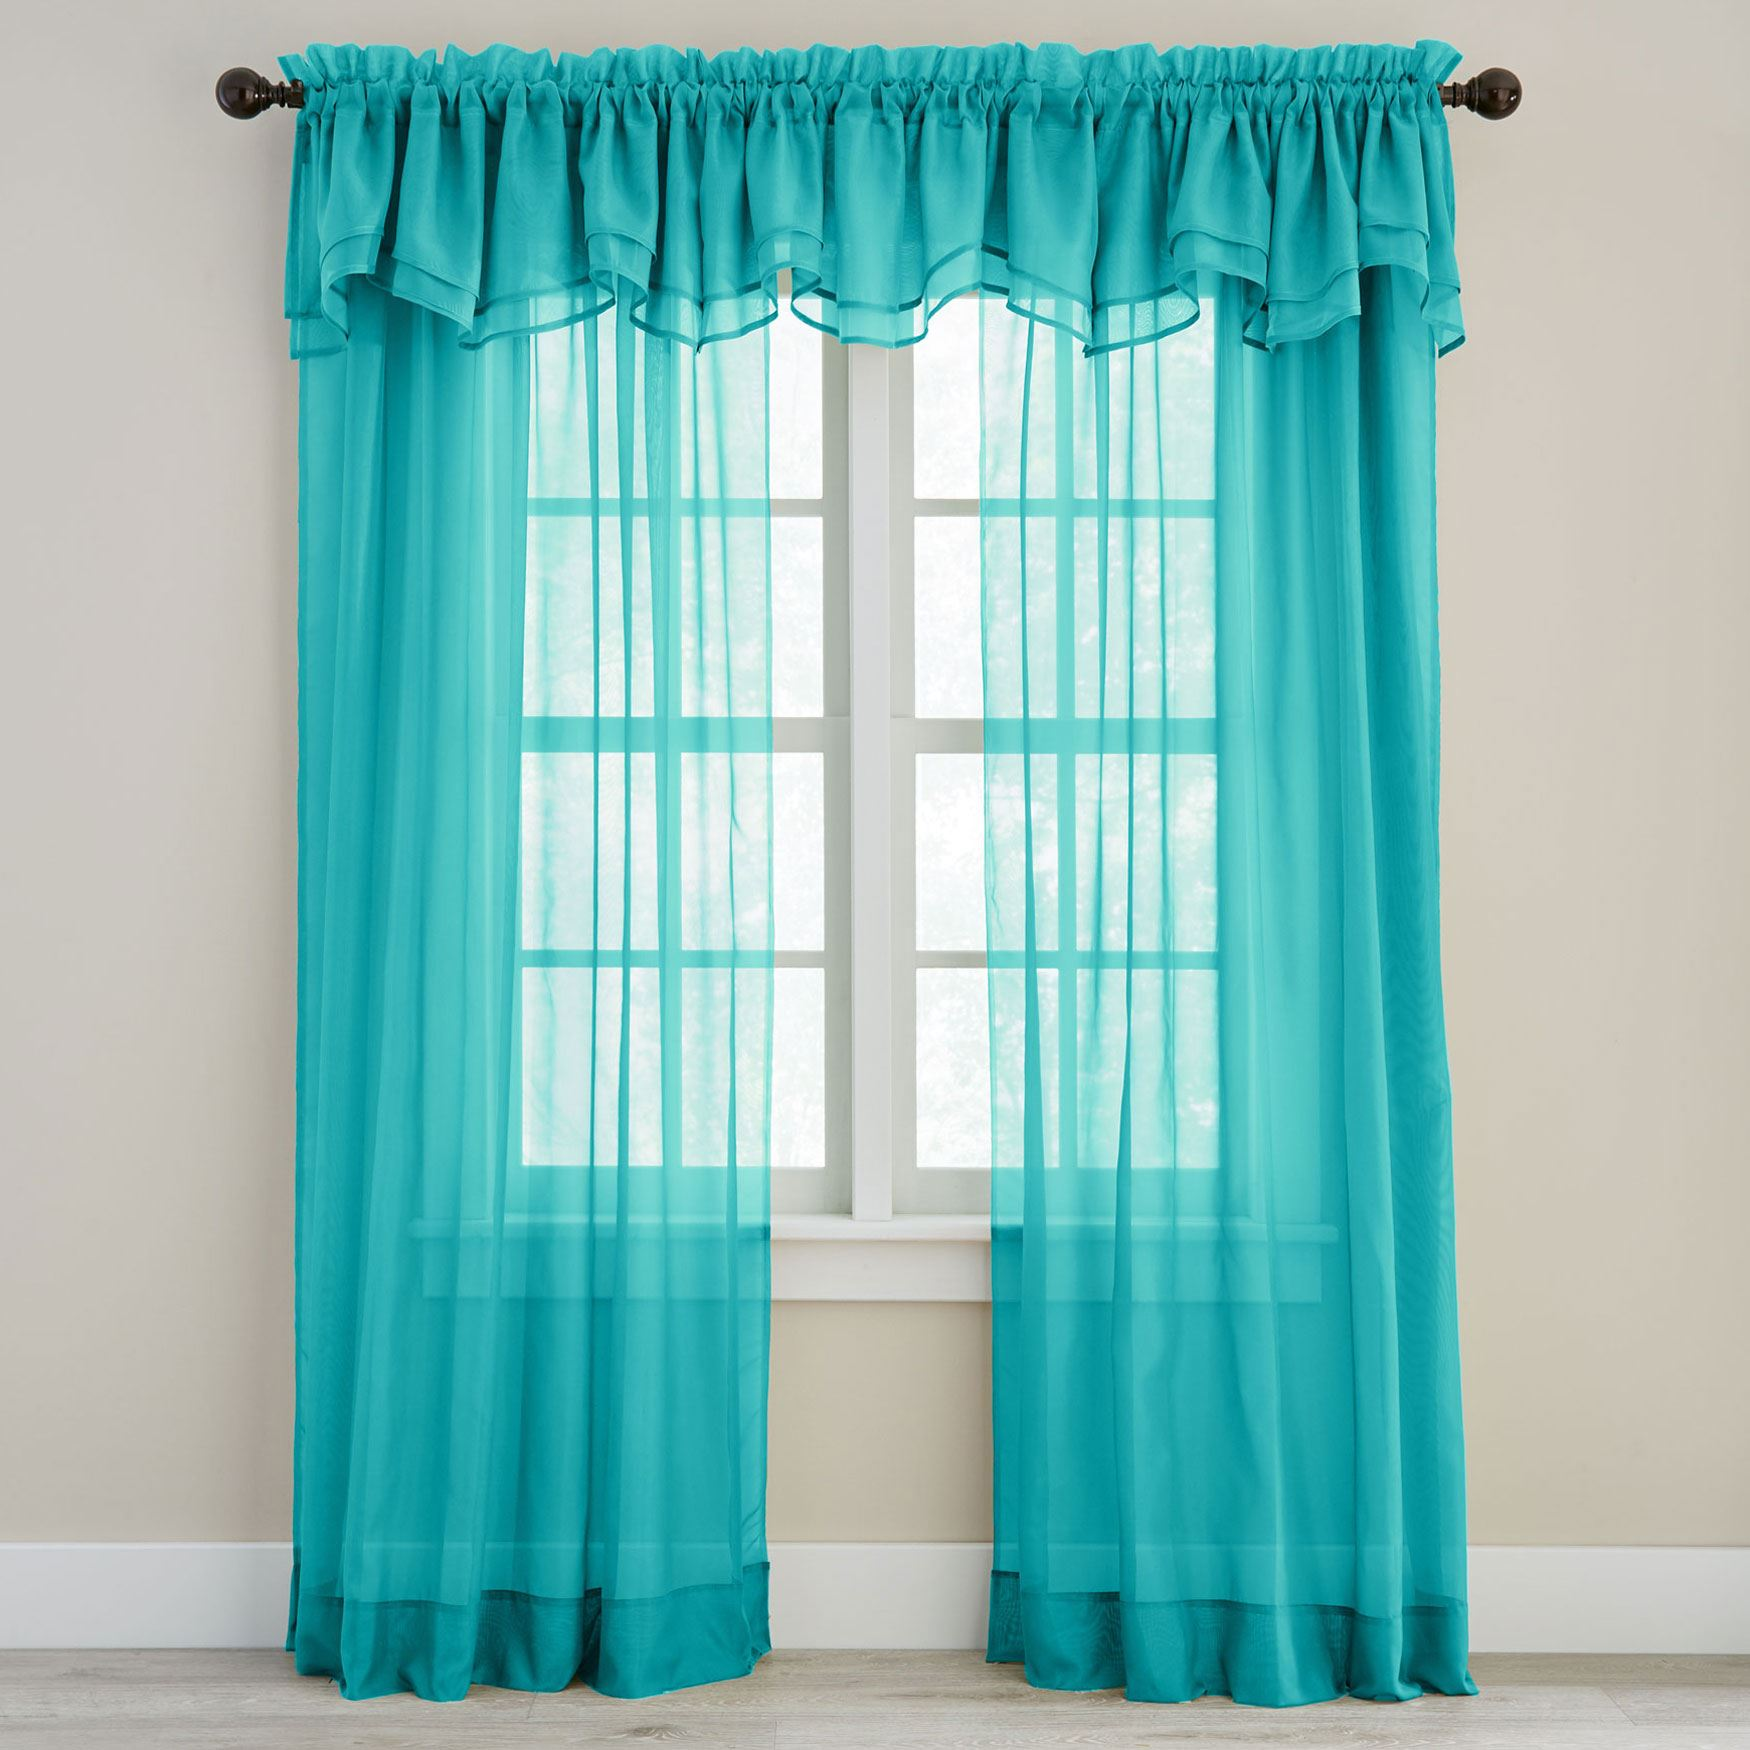 BH Studio Sheer Voile Layered Valance, PEACOCK